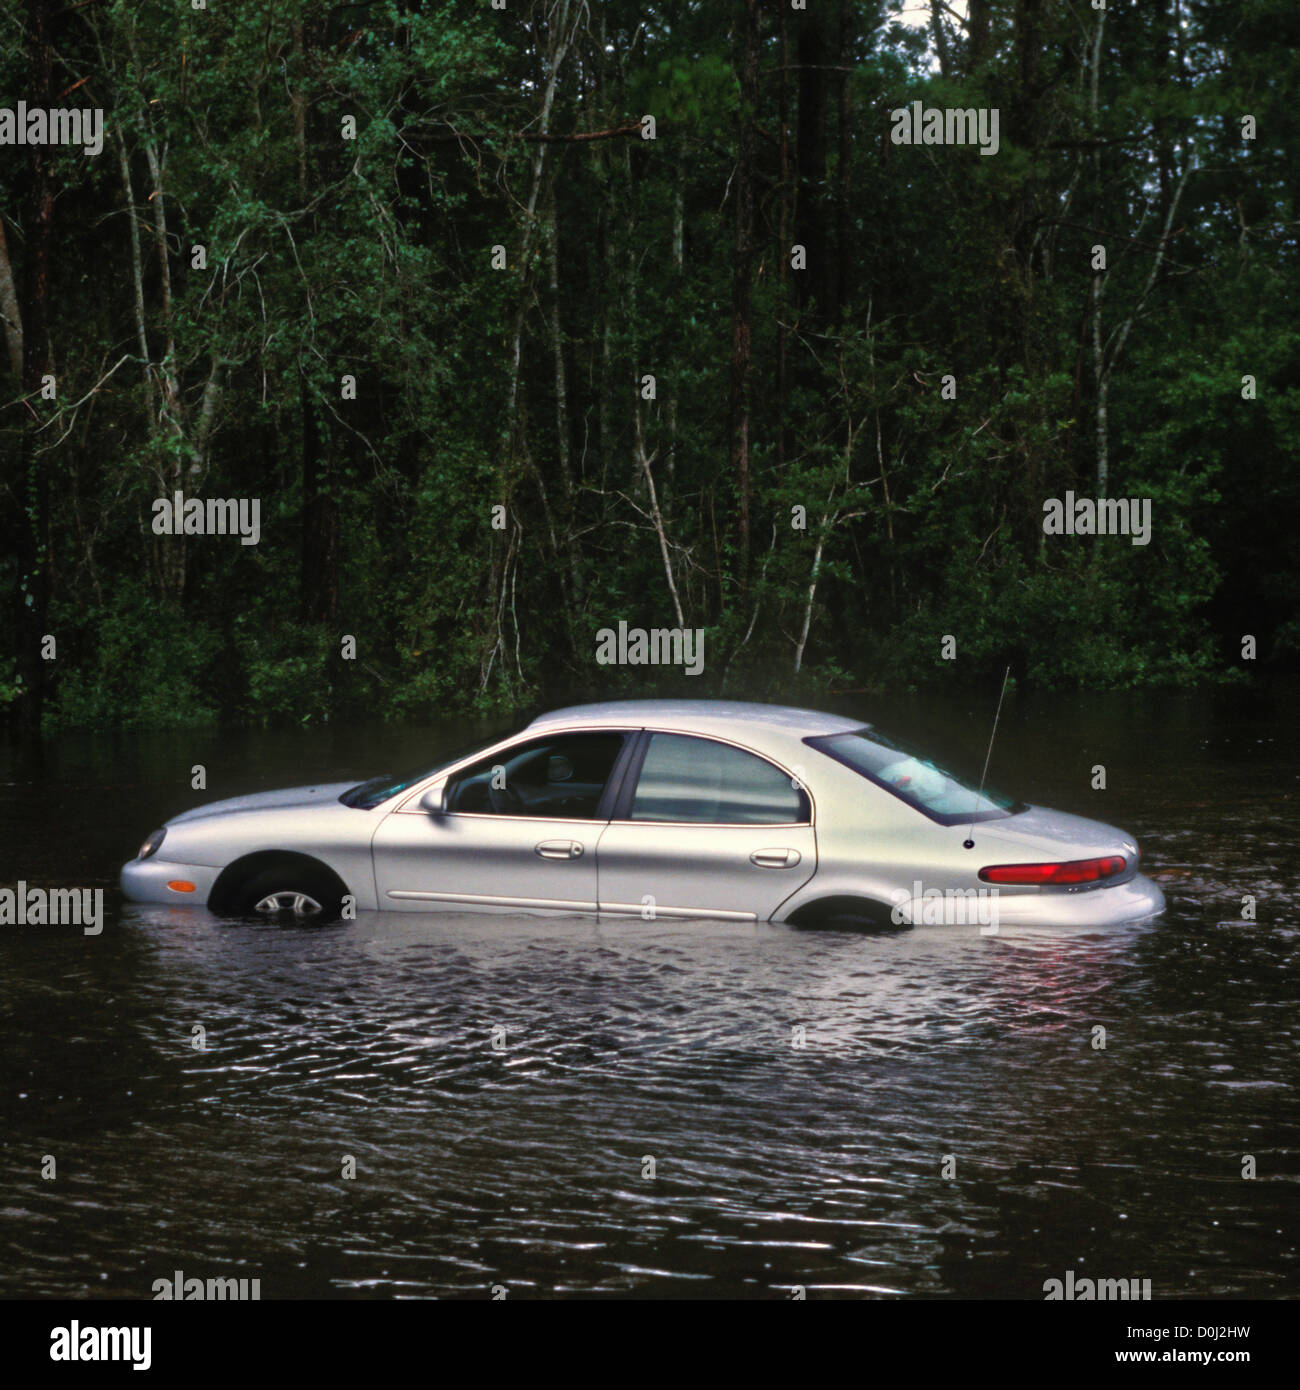 A Car Submerged in Flash Flood Waters - Stock Image